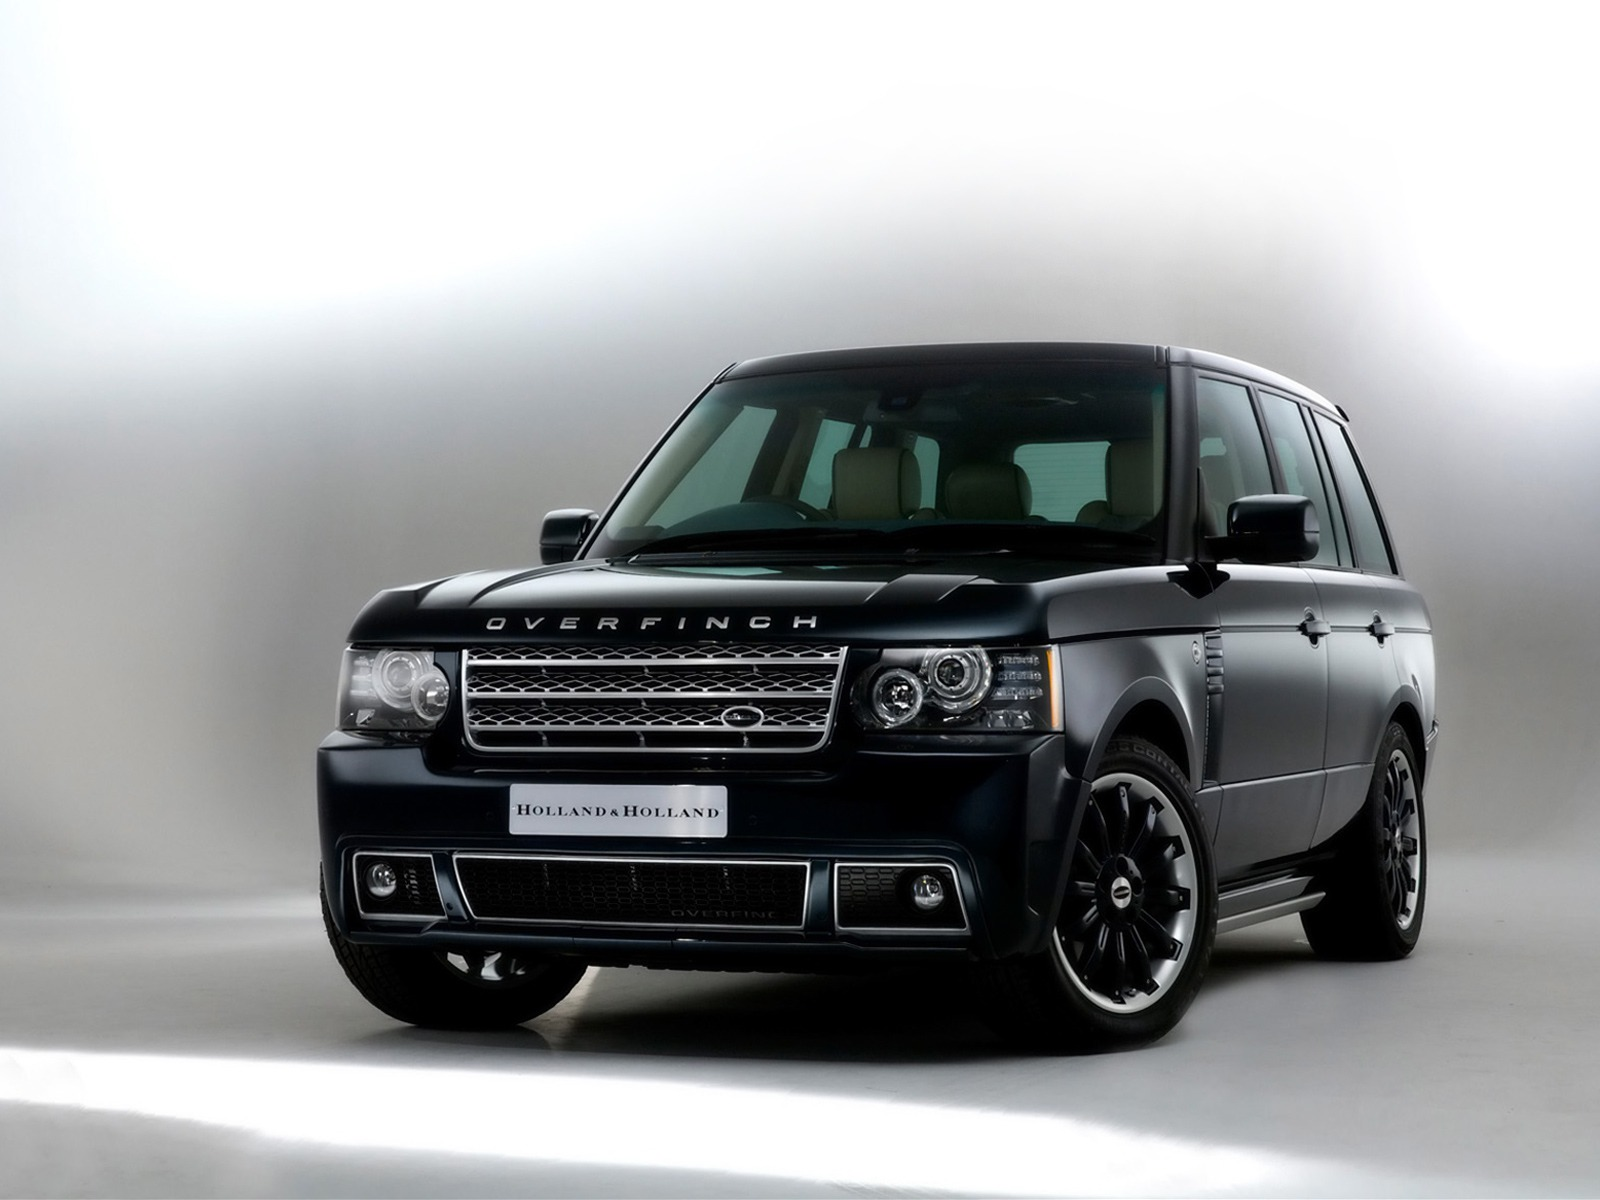 Pimped range rover sport wallpaper range rover cars wallpapers for range rover overfinch wallpaper range rover cars voltagebd Image collections